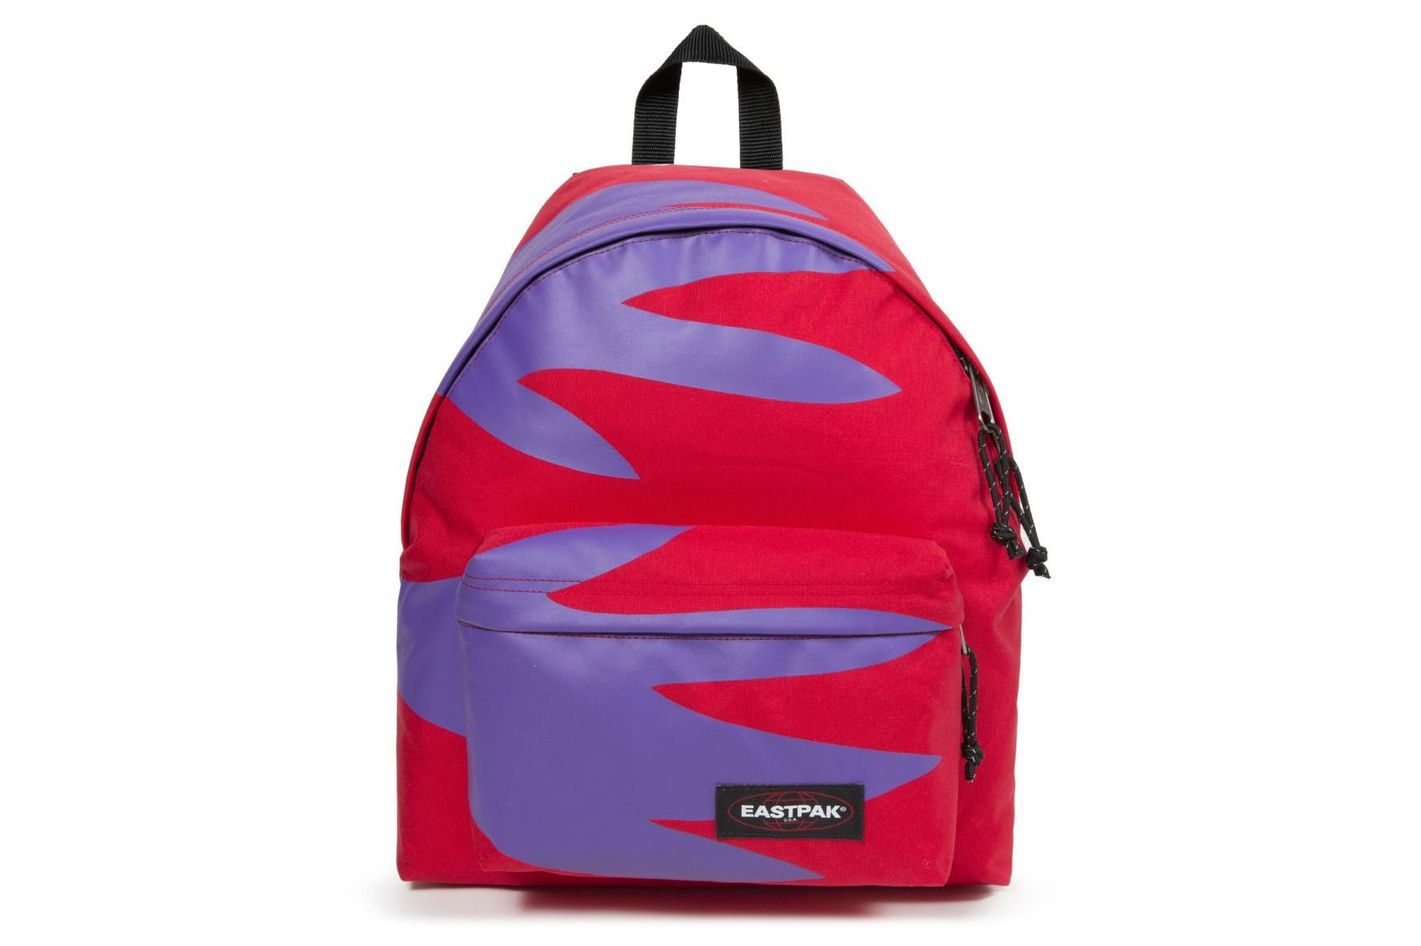 Eastpak Padded Pak'r Don't Let Go Red Backpack